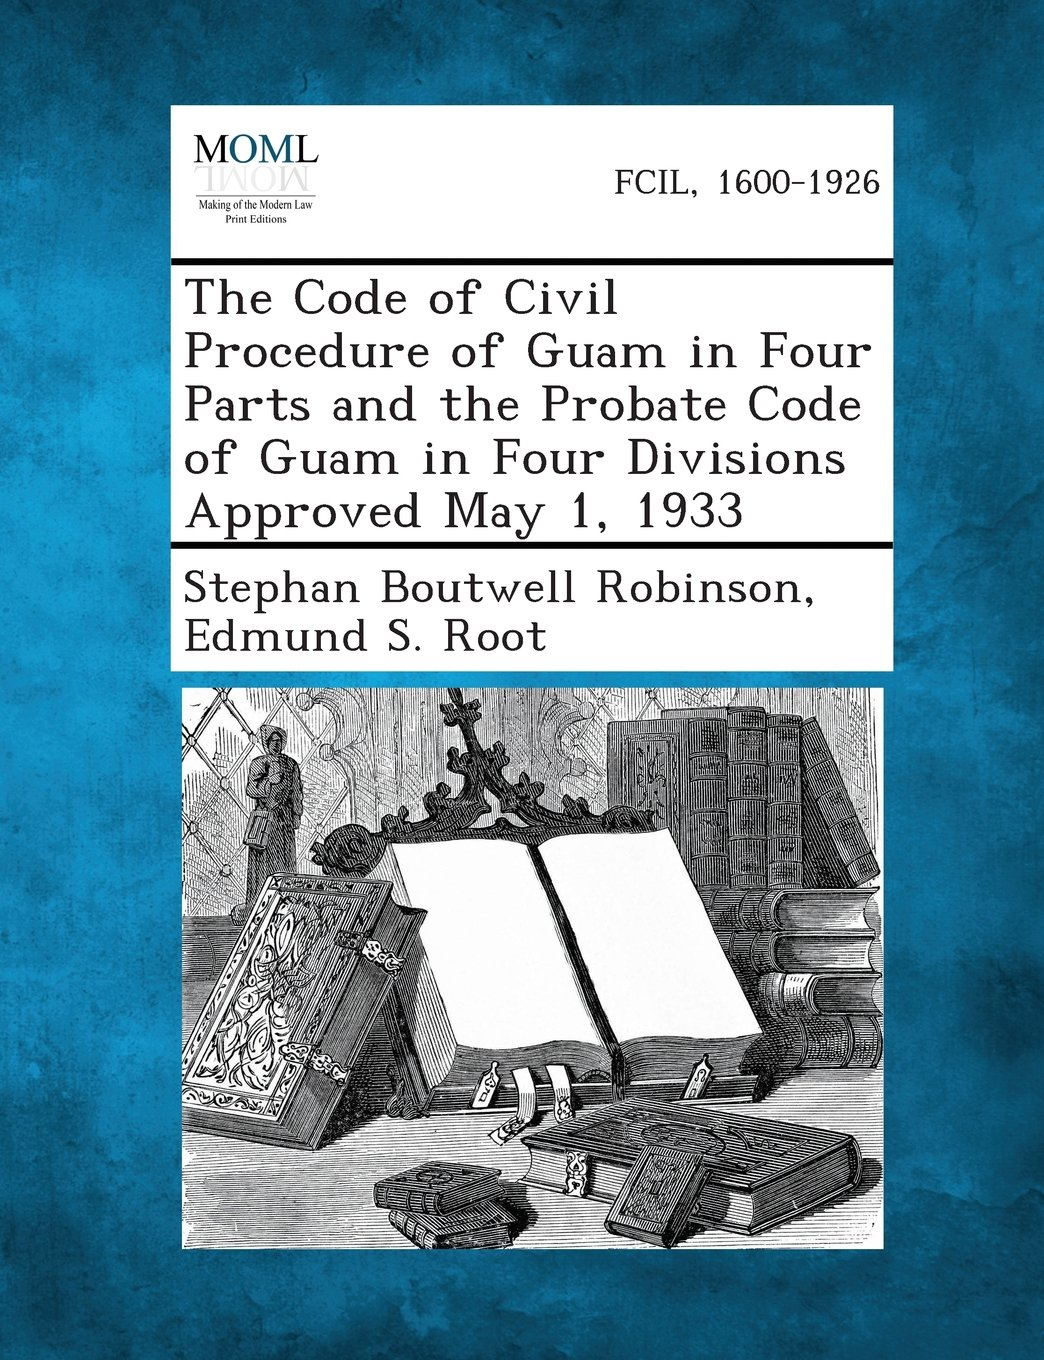 Download The Code of Civil Procedure of Guam in Four Parts and the Probate Code of Guam in Four Divisions Approved May 1, 1933 PDF